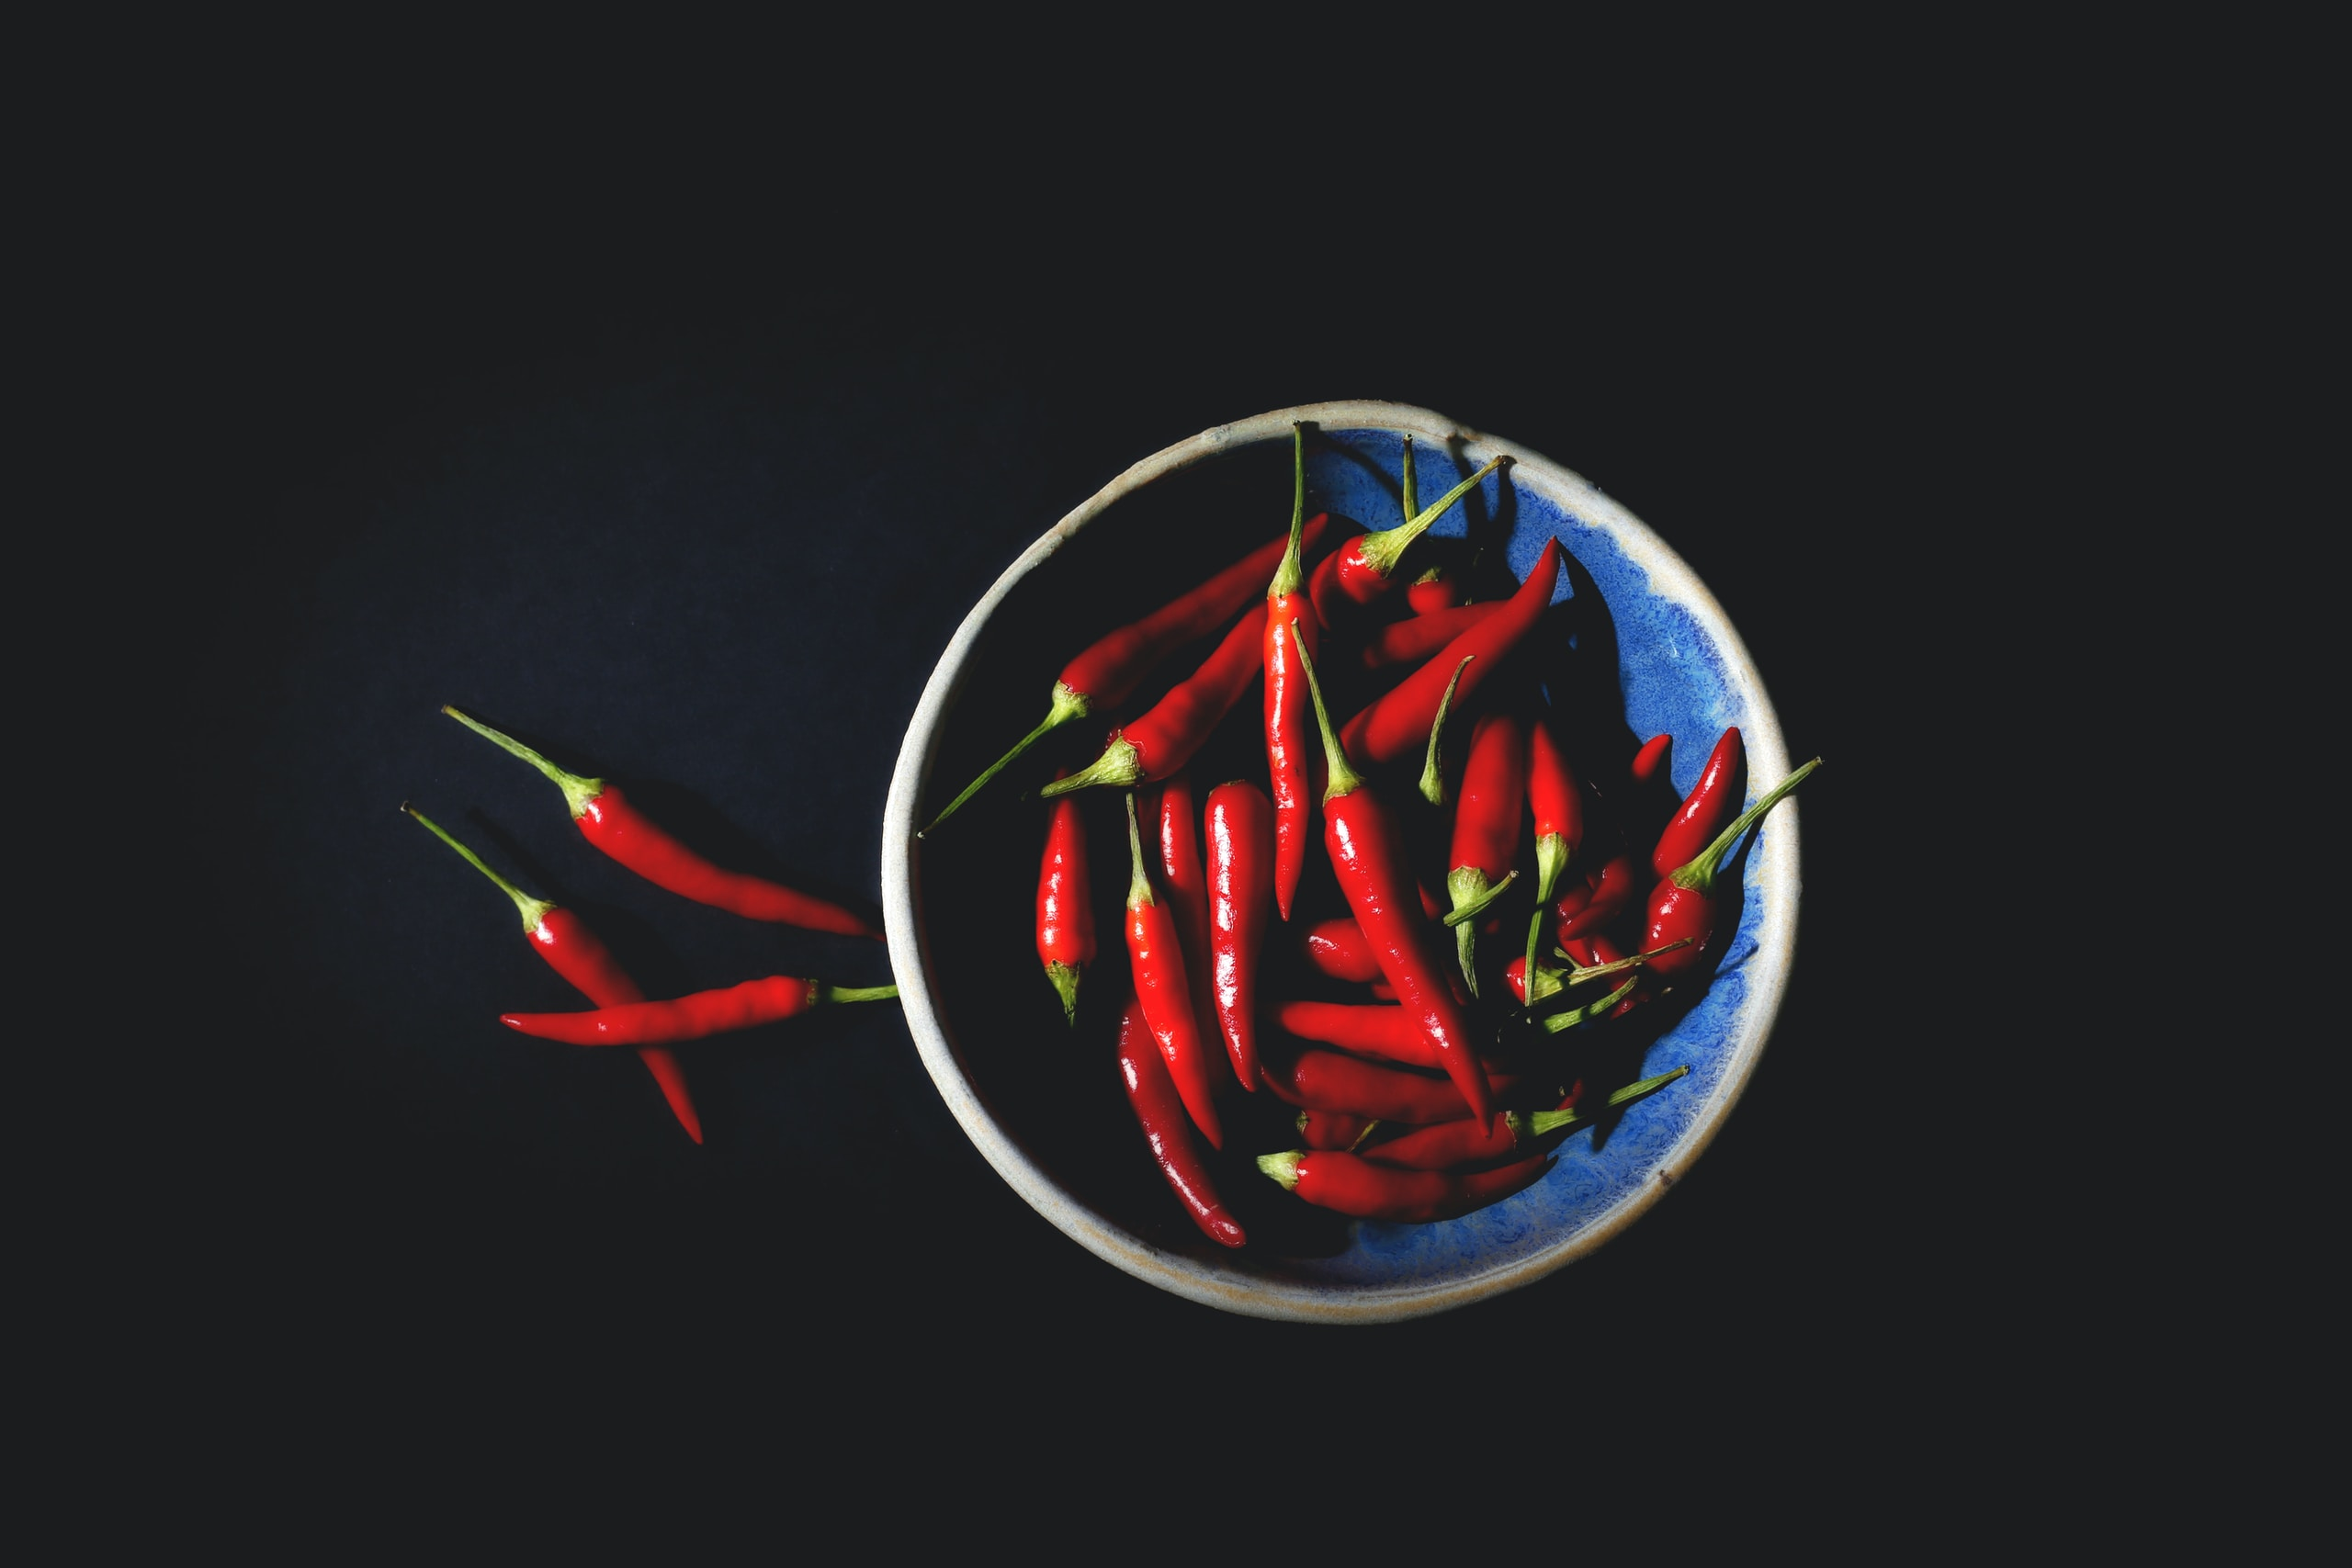 A bowl of red chilies